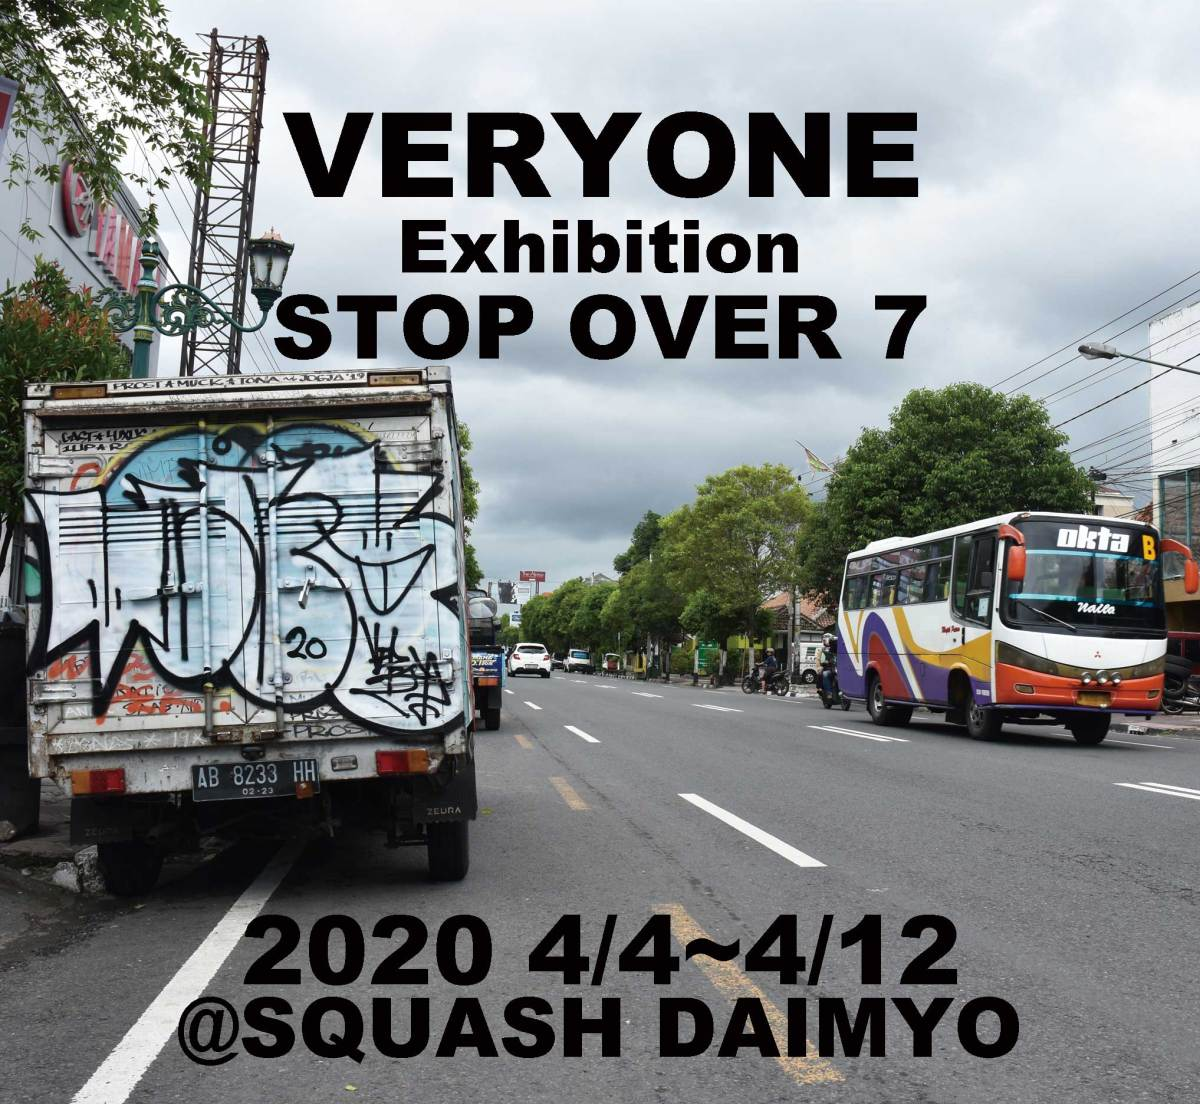 VERYONE Exhibition Stop Over 7